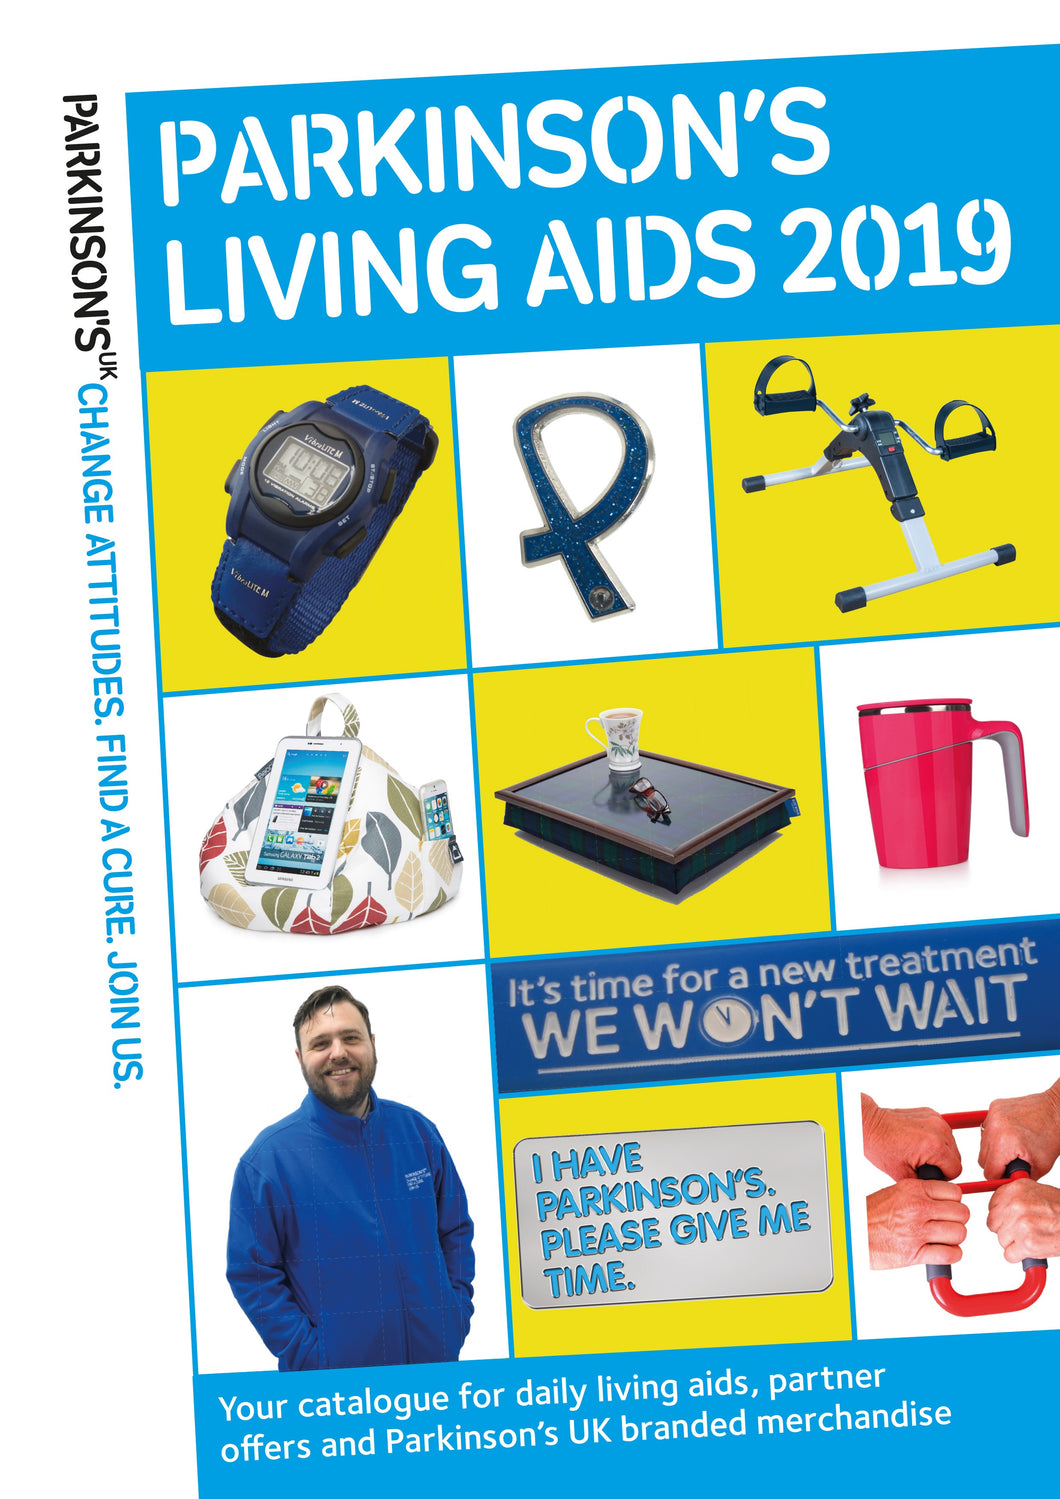 2019 Parkinson's UK living aids catalogue